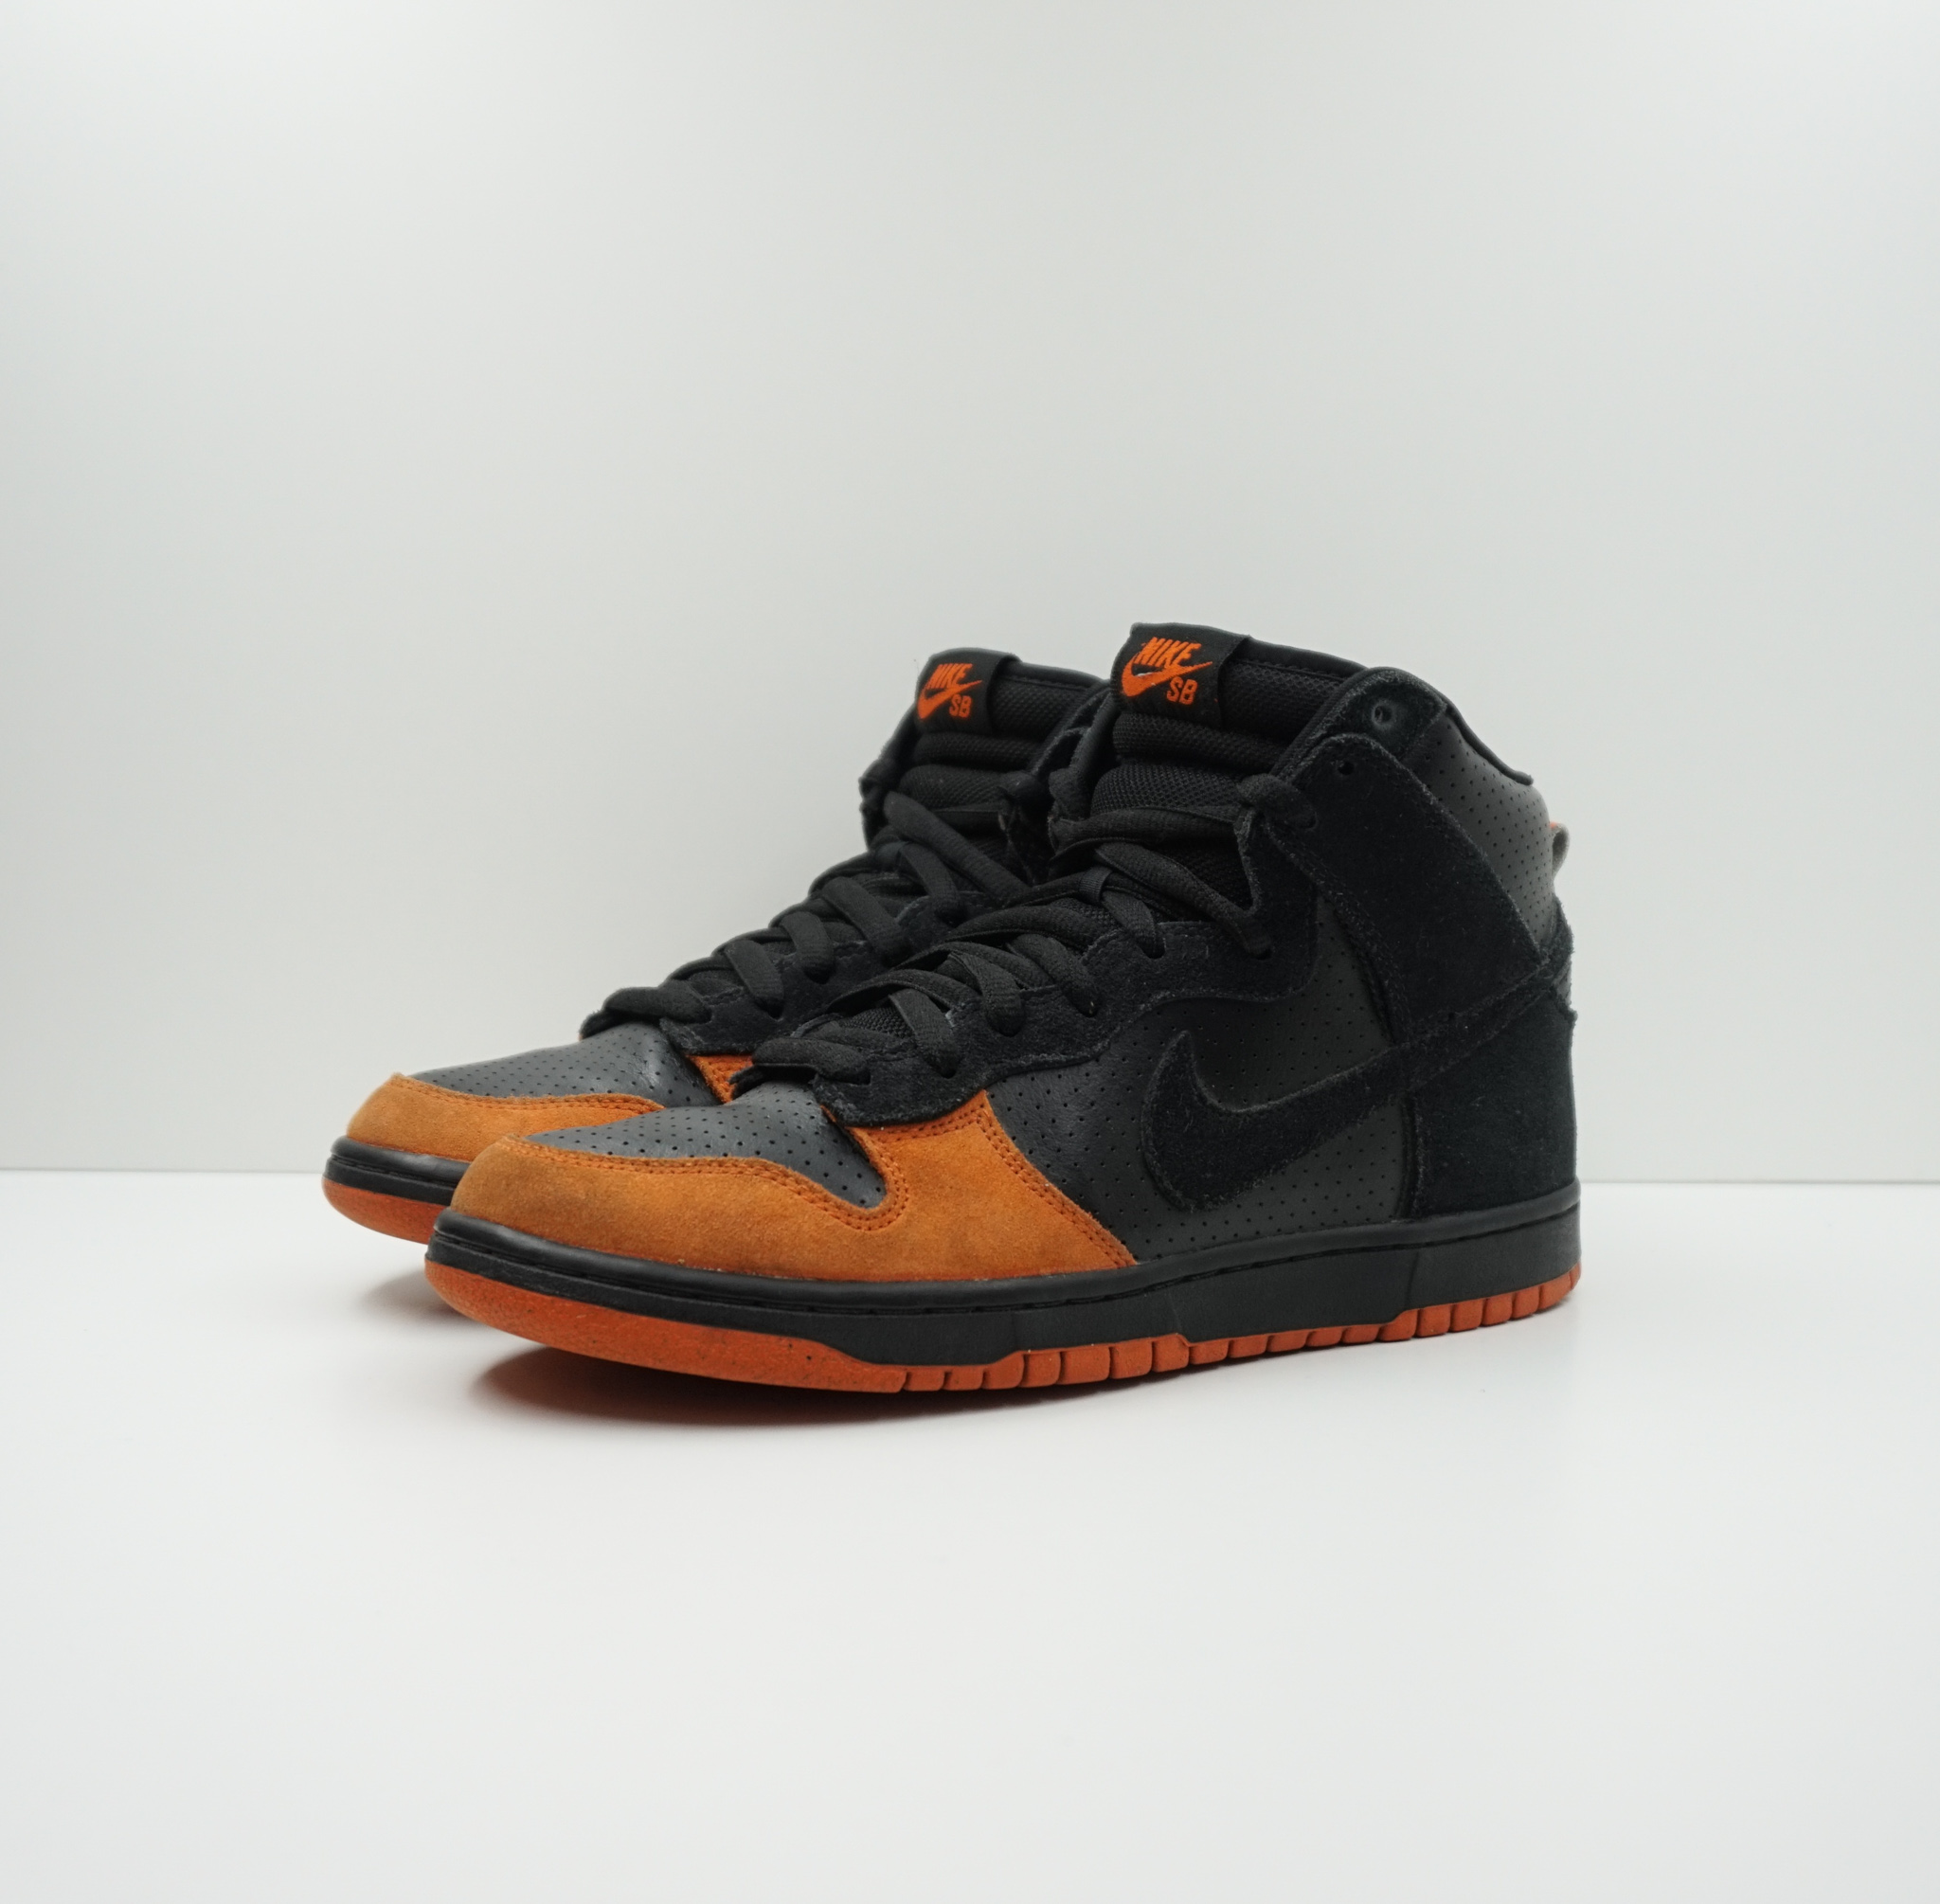 Nike SB Dunk High Black Solar Orange